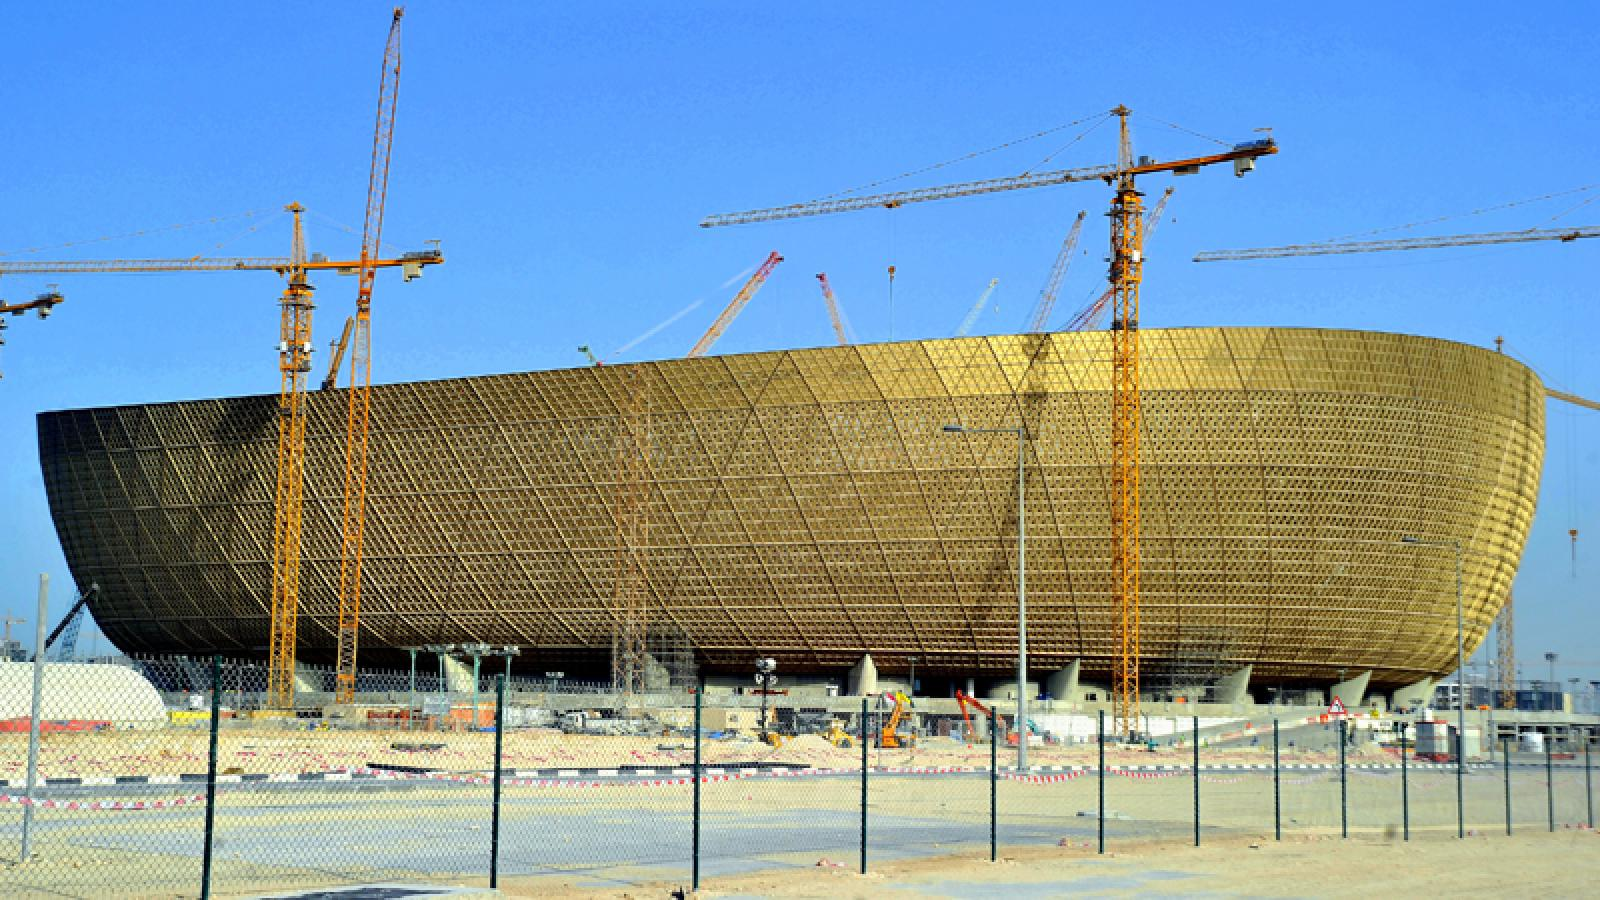 Qatar is fully prepared to host the FIFA World Cup 2022: PM